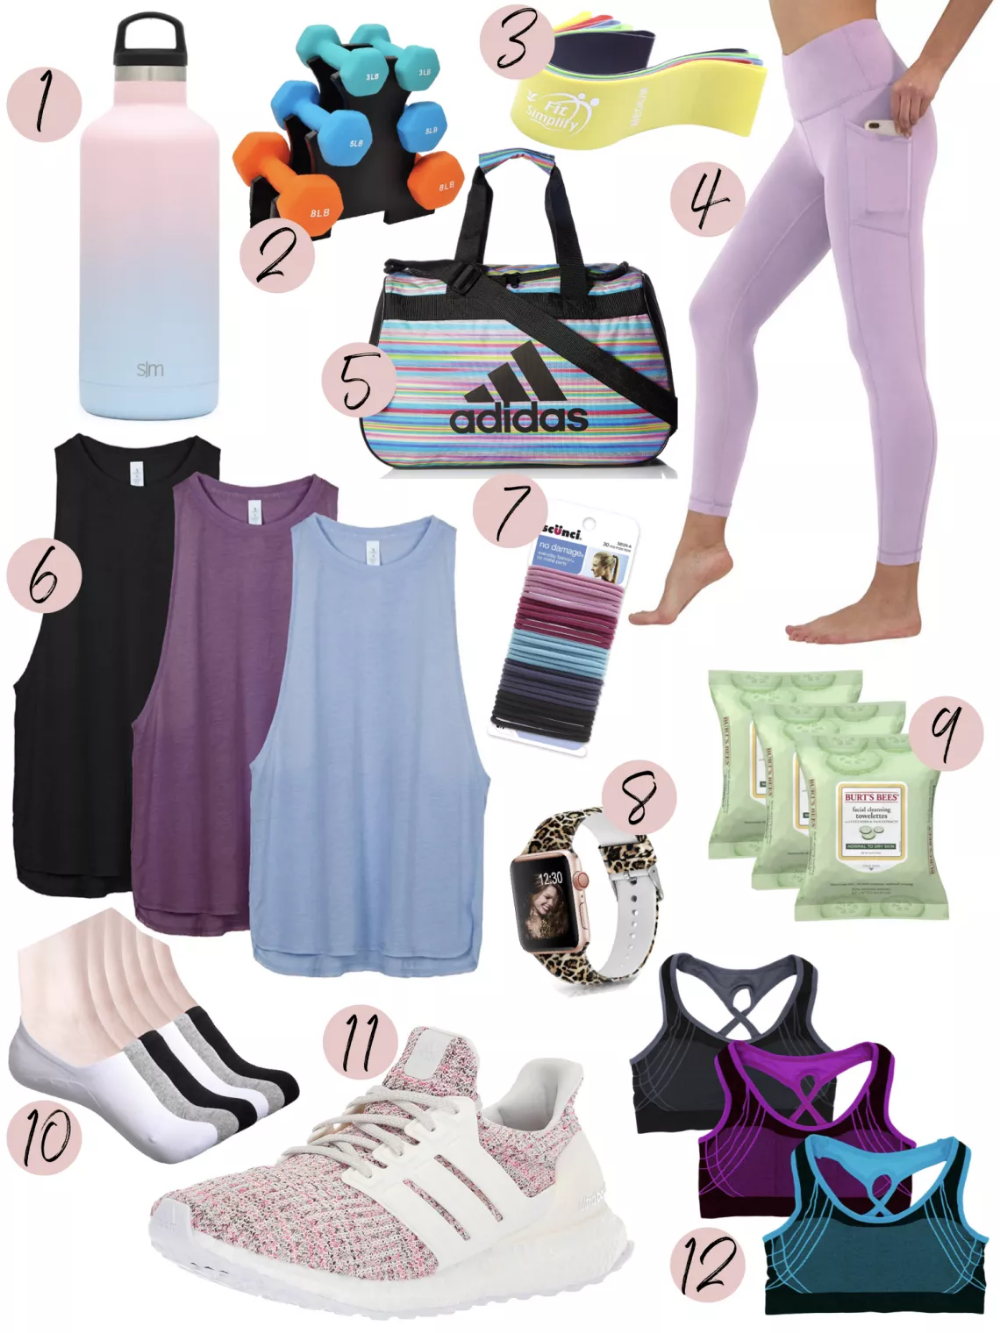 My MustHave Workout Gear from Amazon Prime Workout gear